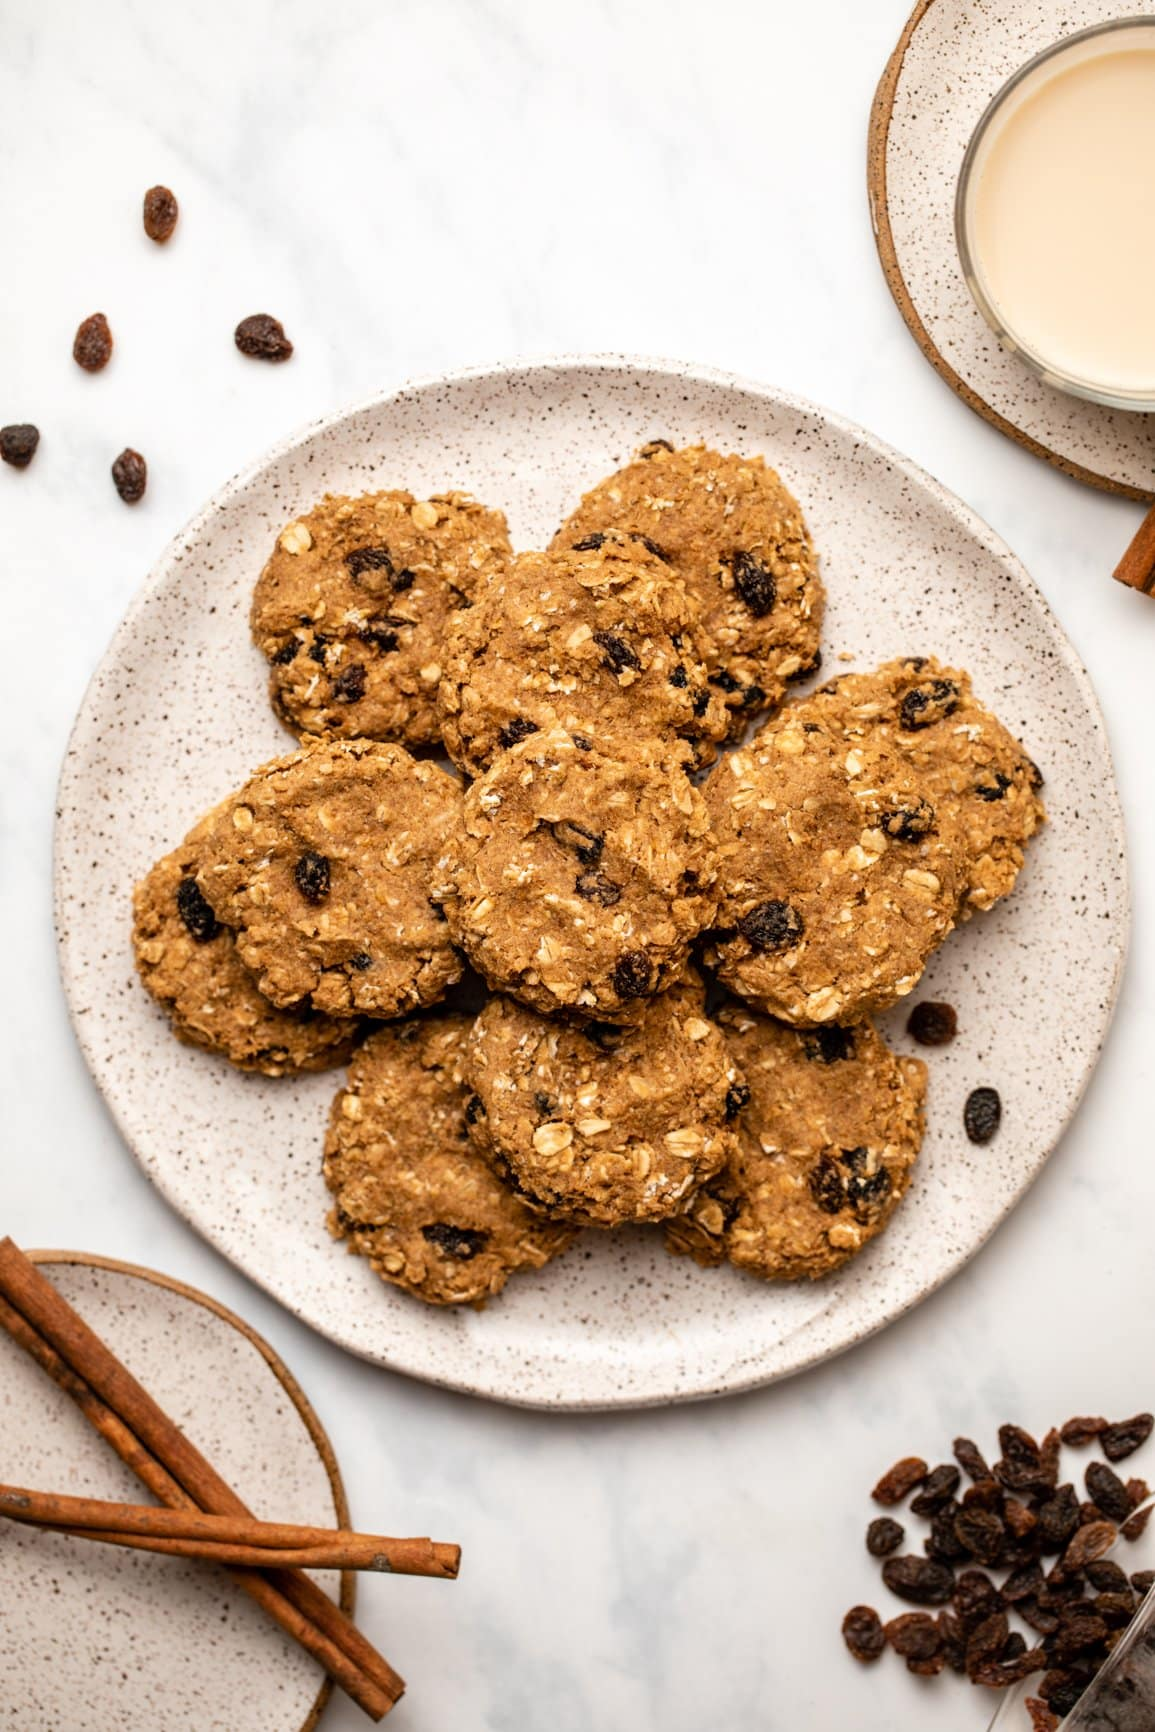 plate of cinnamon raisin oatmeal cookies on marble background next to cinnamon sticks and glass of milk